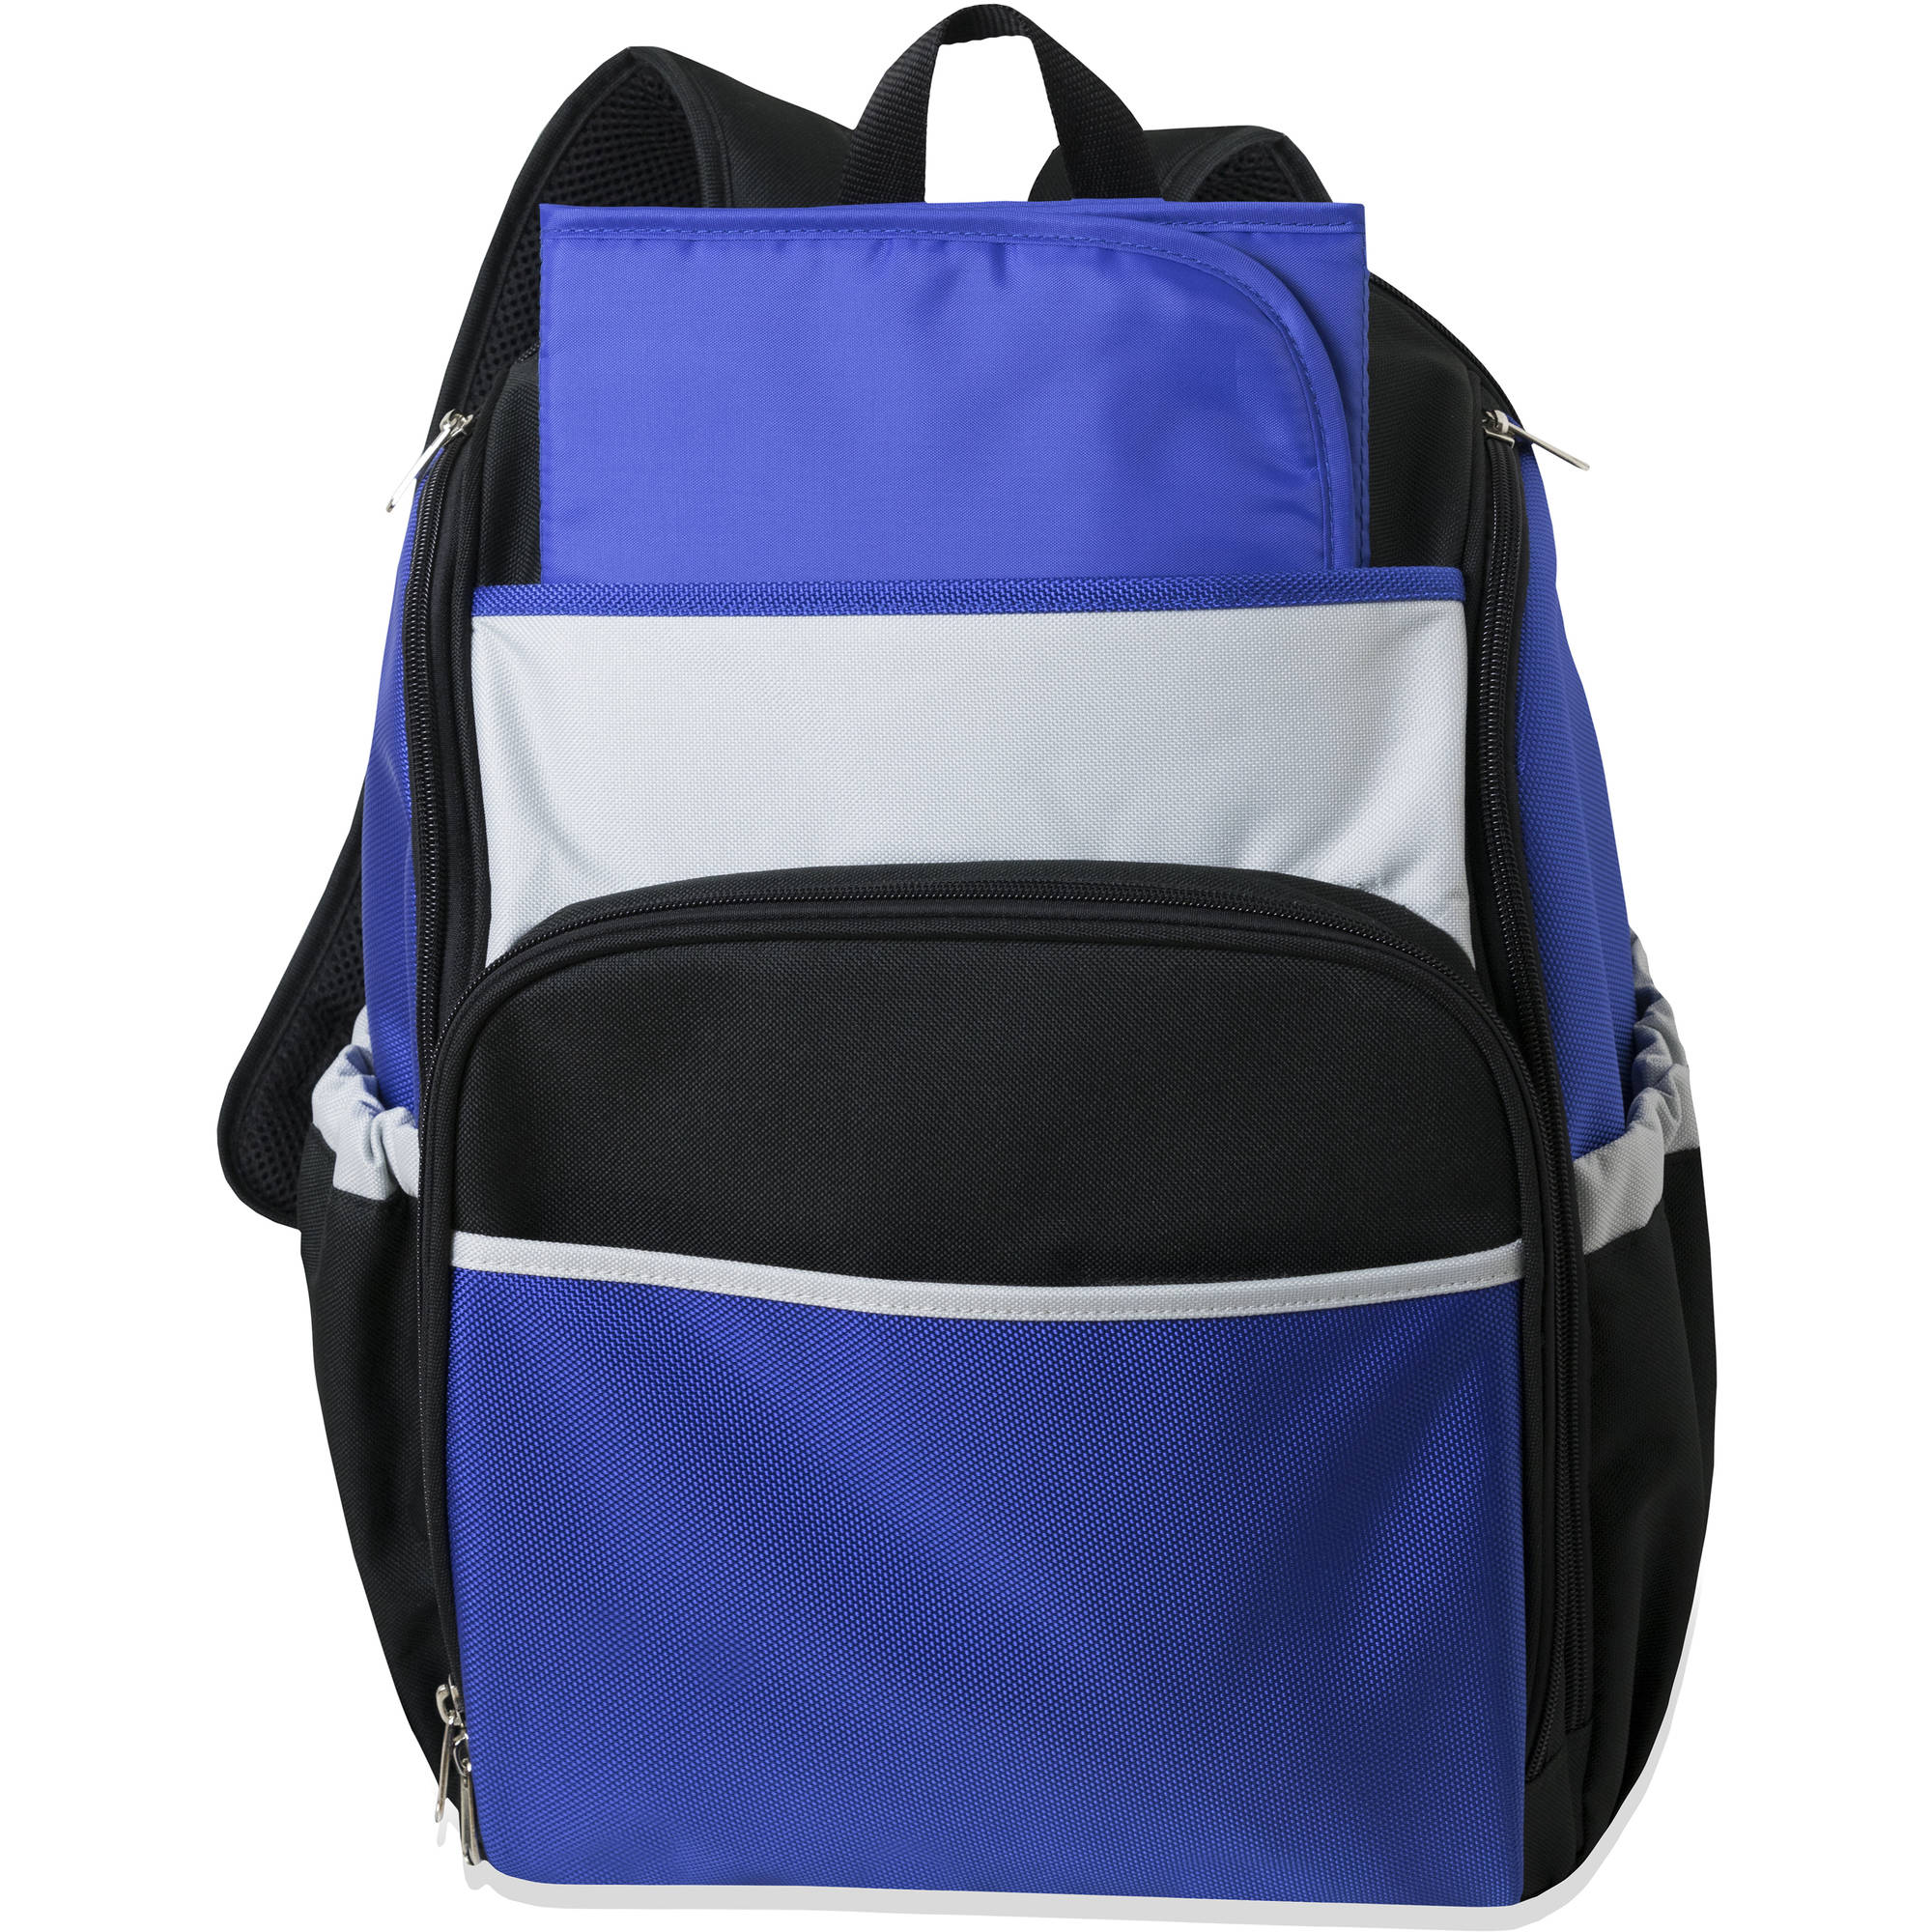 Baby boom spaces and places backpack diaper bag walmart com